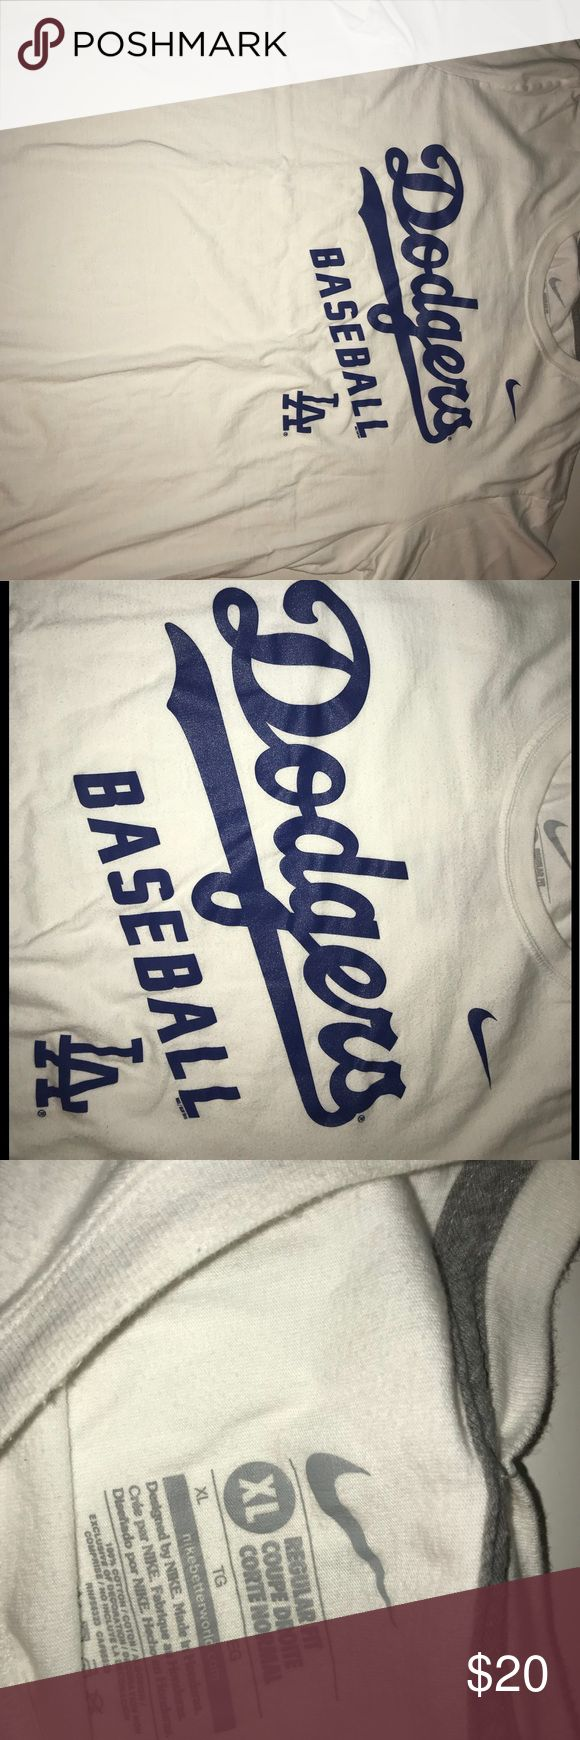 Nike Dodgers T shirt Dodgers T shirt made by Nike. Unisex. Go well with jeans or a skirt. 100% cotton. NWOT Nike Shirts Tees - Short Sleeve